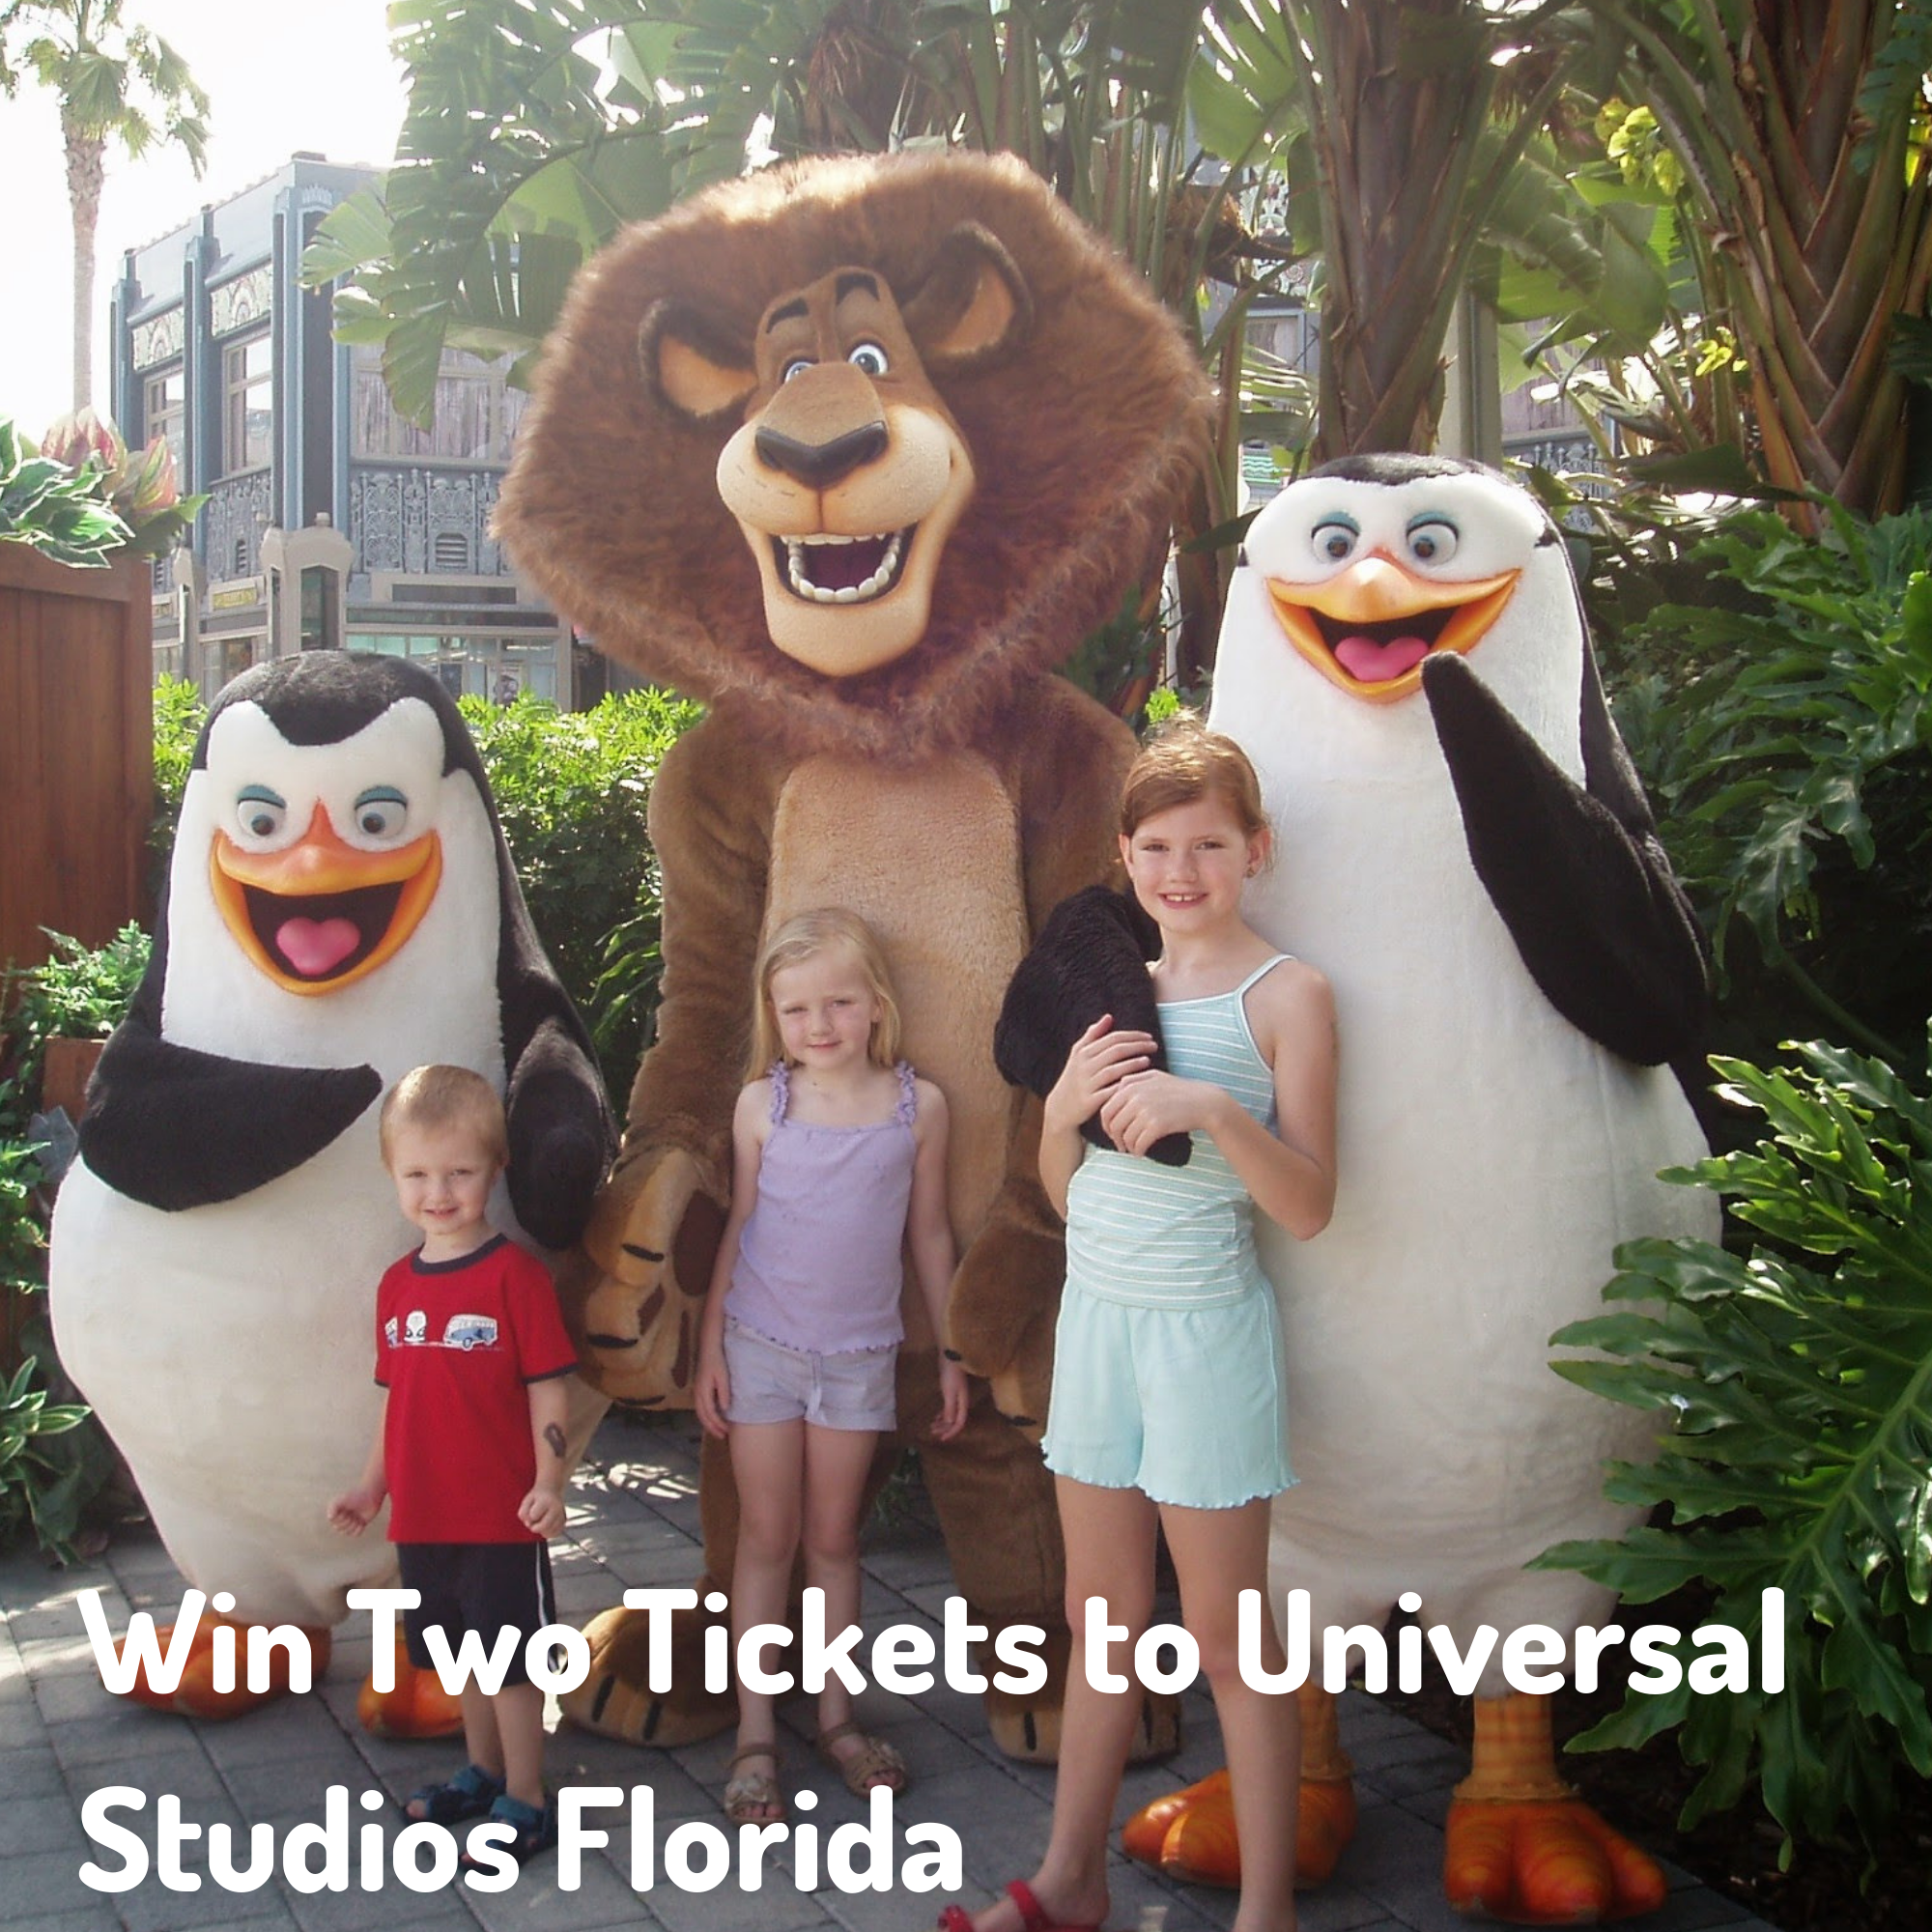 Win Two Tickets to Universal Studios Florida